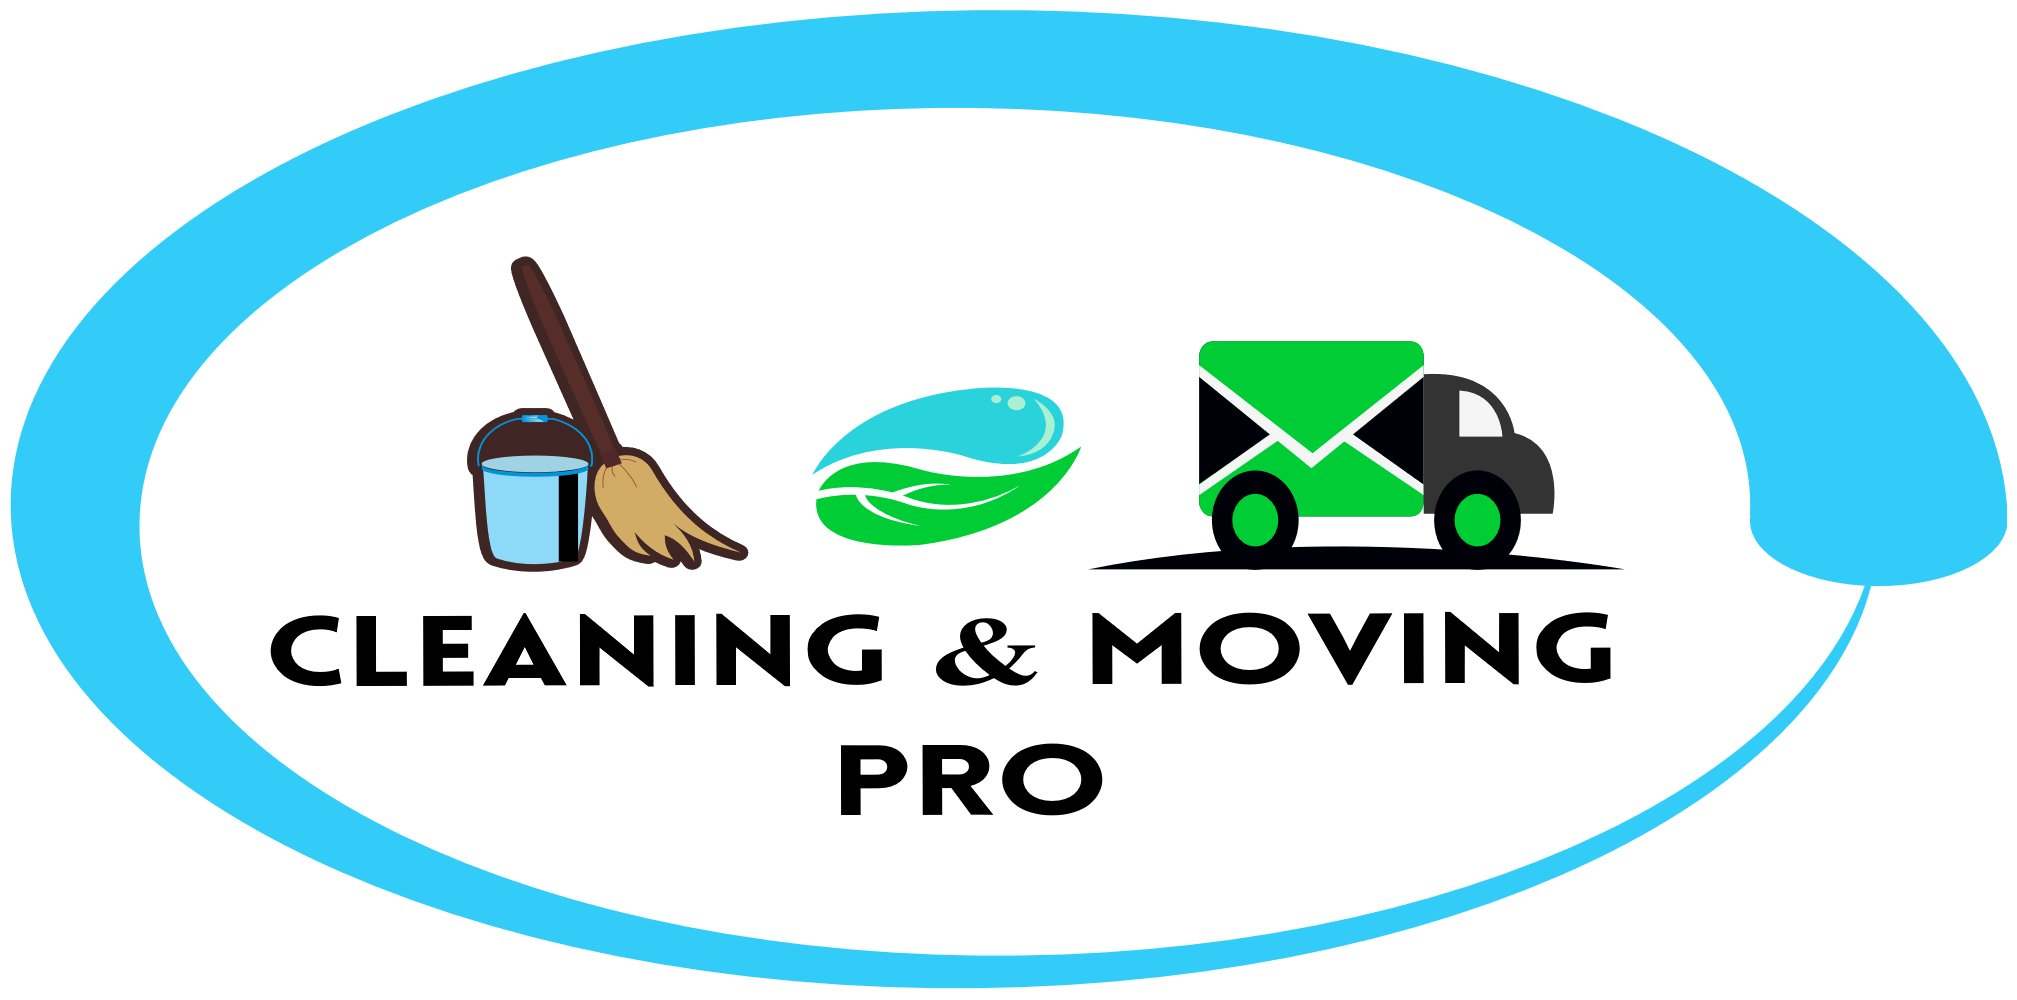 Home-CLEANING & MOVING PRO